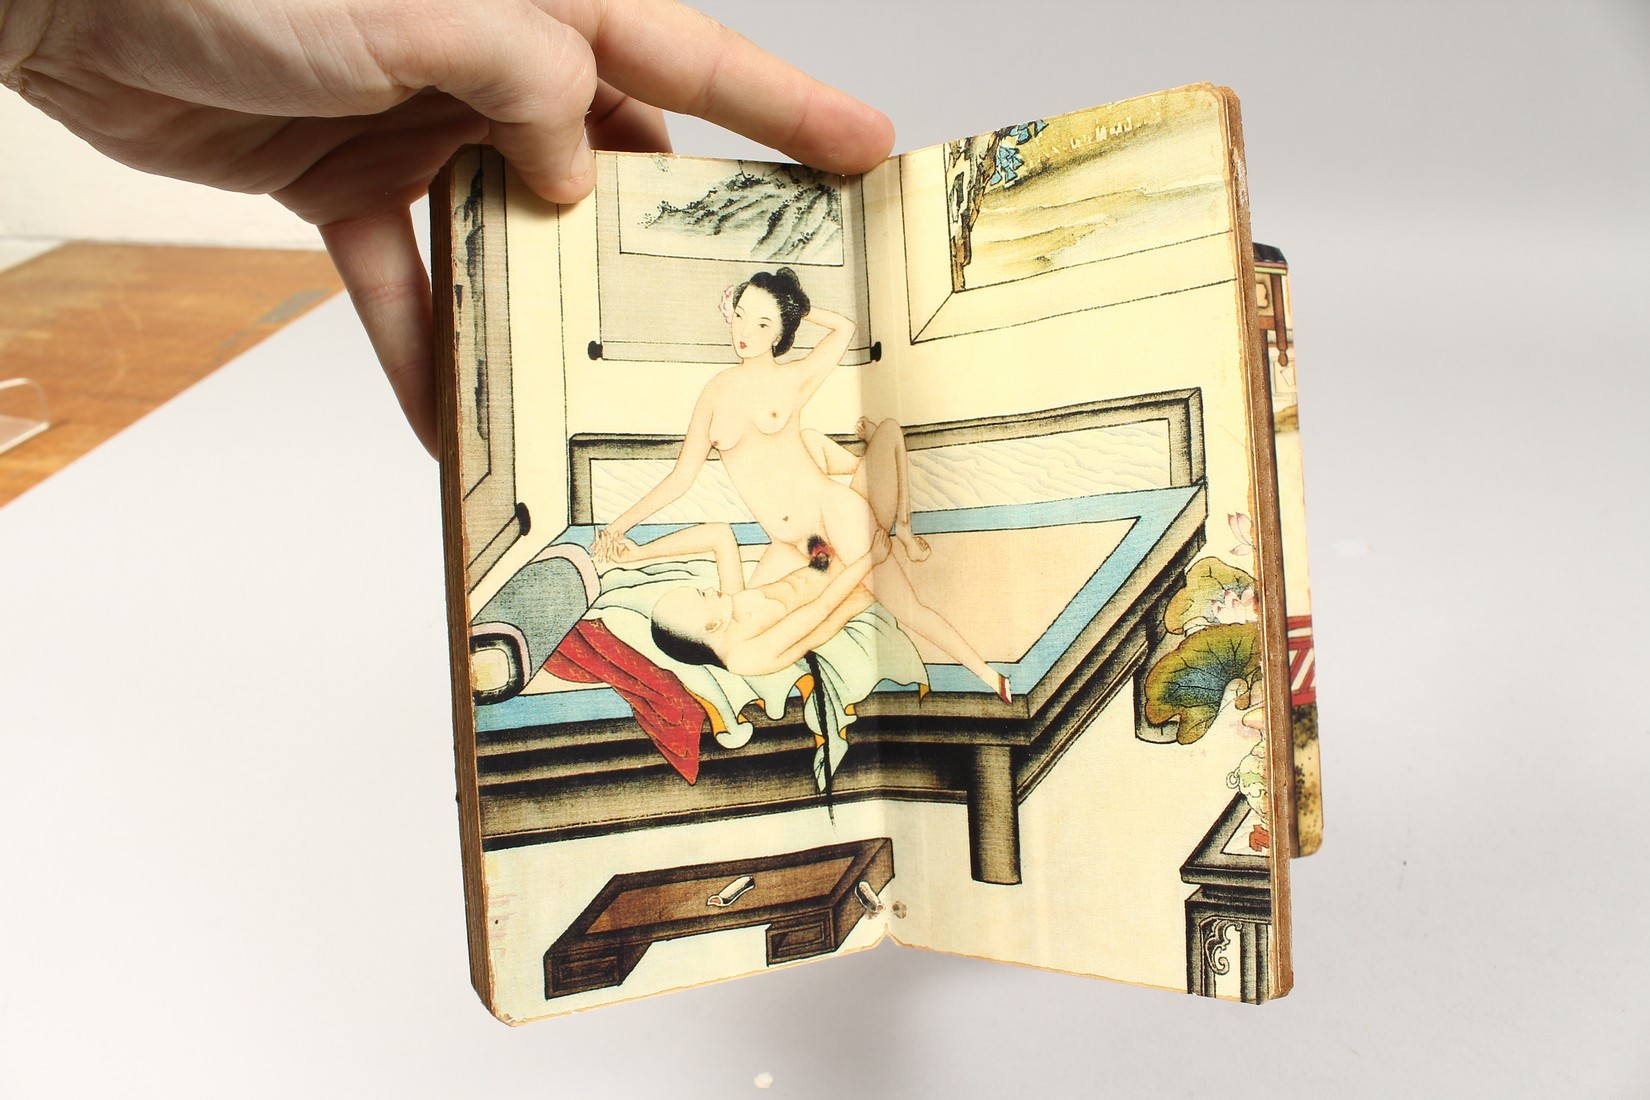 AN EROTIC CHINESE FOLDING BOOK. - Image 6 of 9